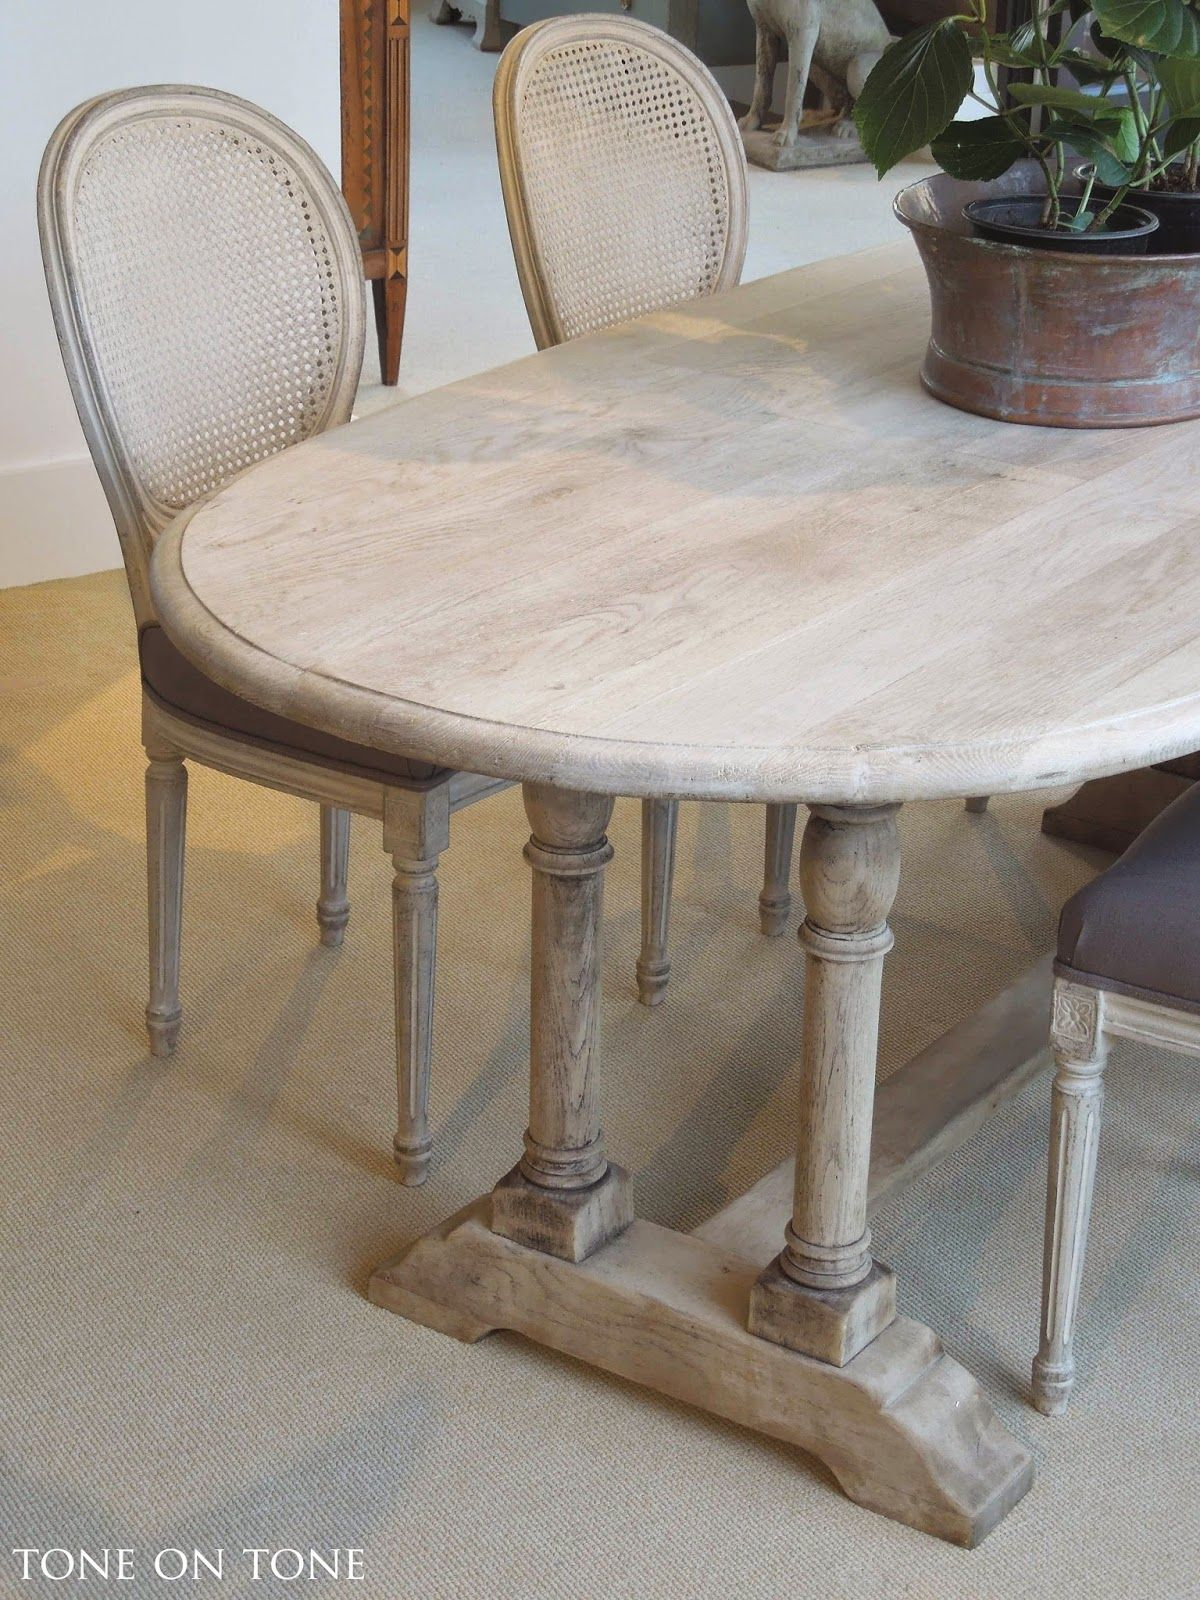 Oval oak dining room table - Here Is A 19th Century Belgian Bleached Oak Dining Kitchen Table With Oval Top And